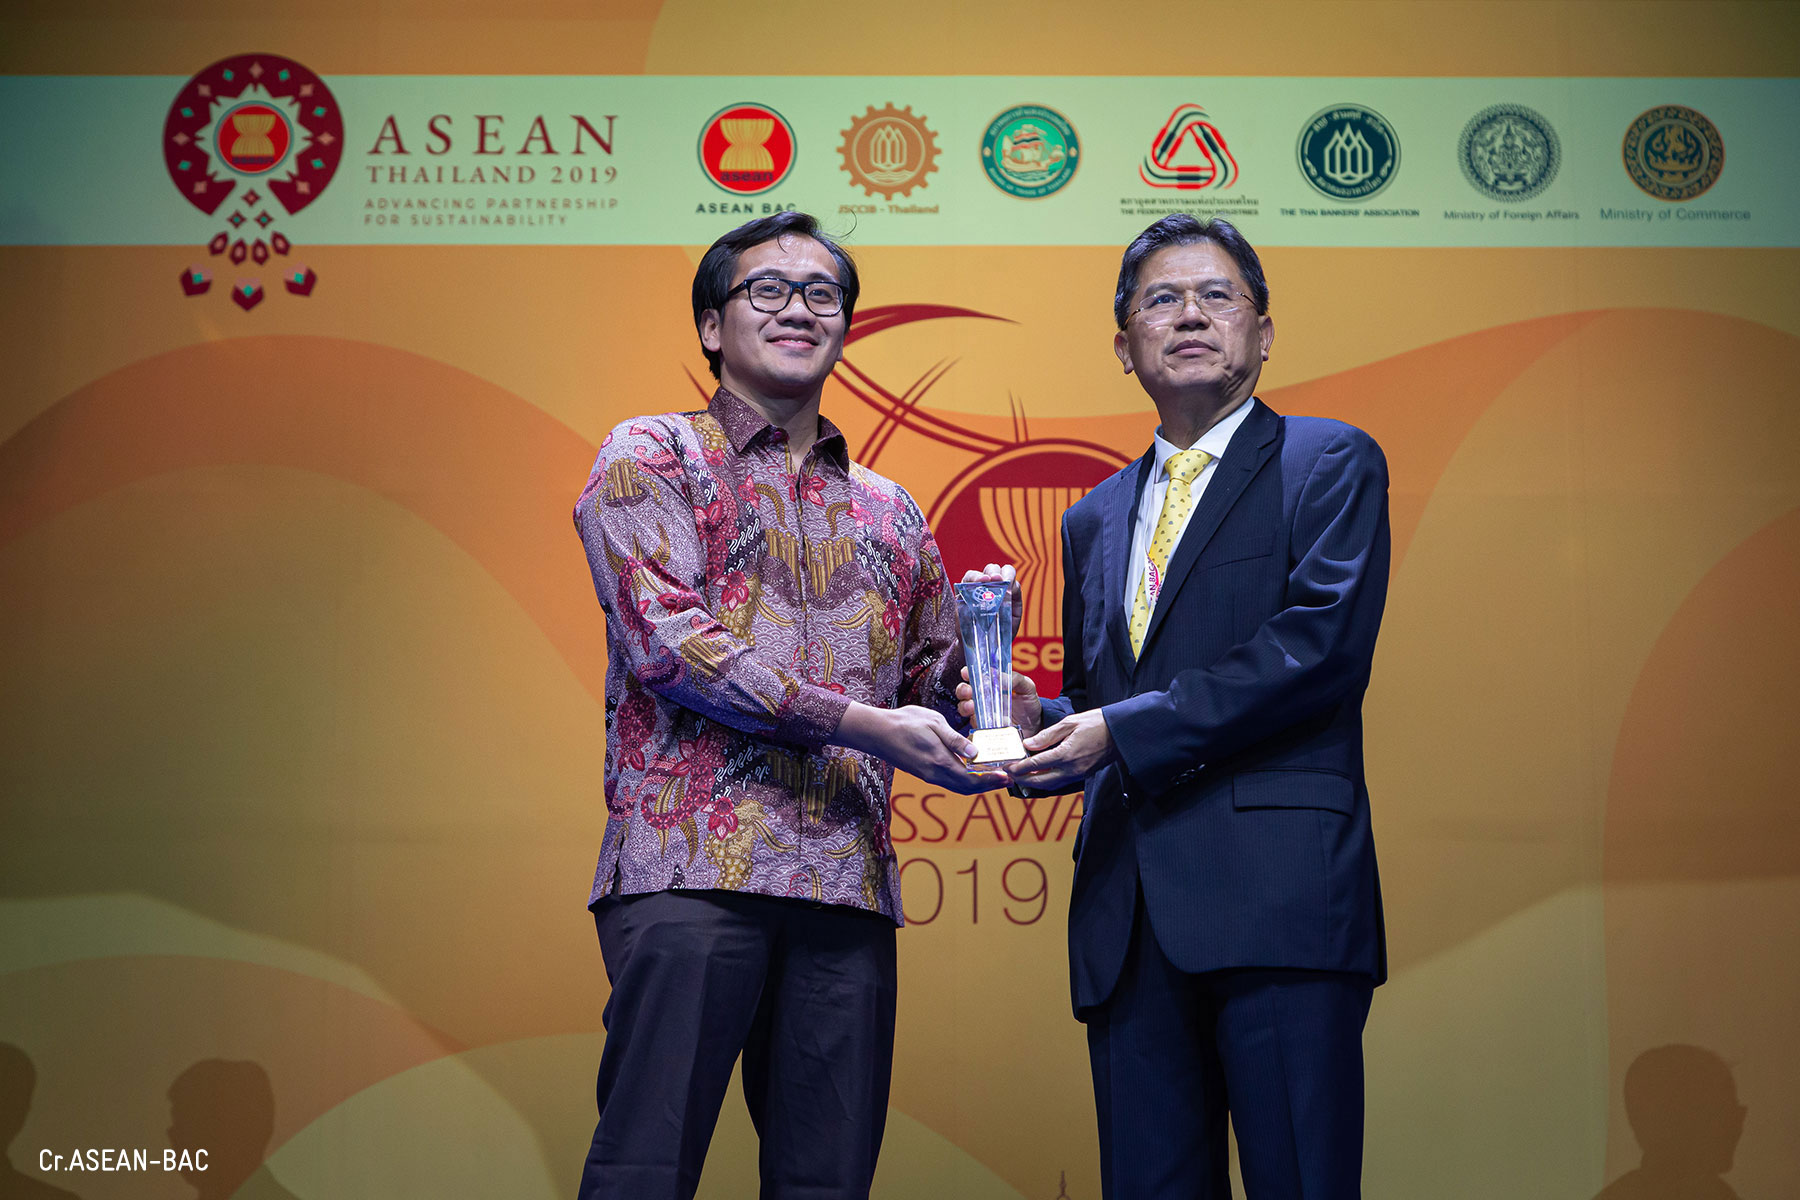 Dicoding receiving trophy Narenda Wicaksono, CEO of Dicoding Indonesia and Mr. Predee Daochai, Chairman of the Thai Bankers' Association